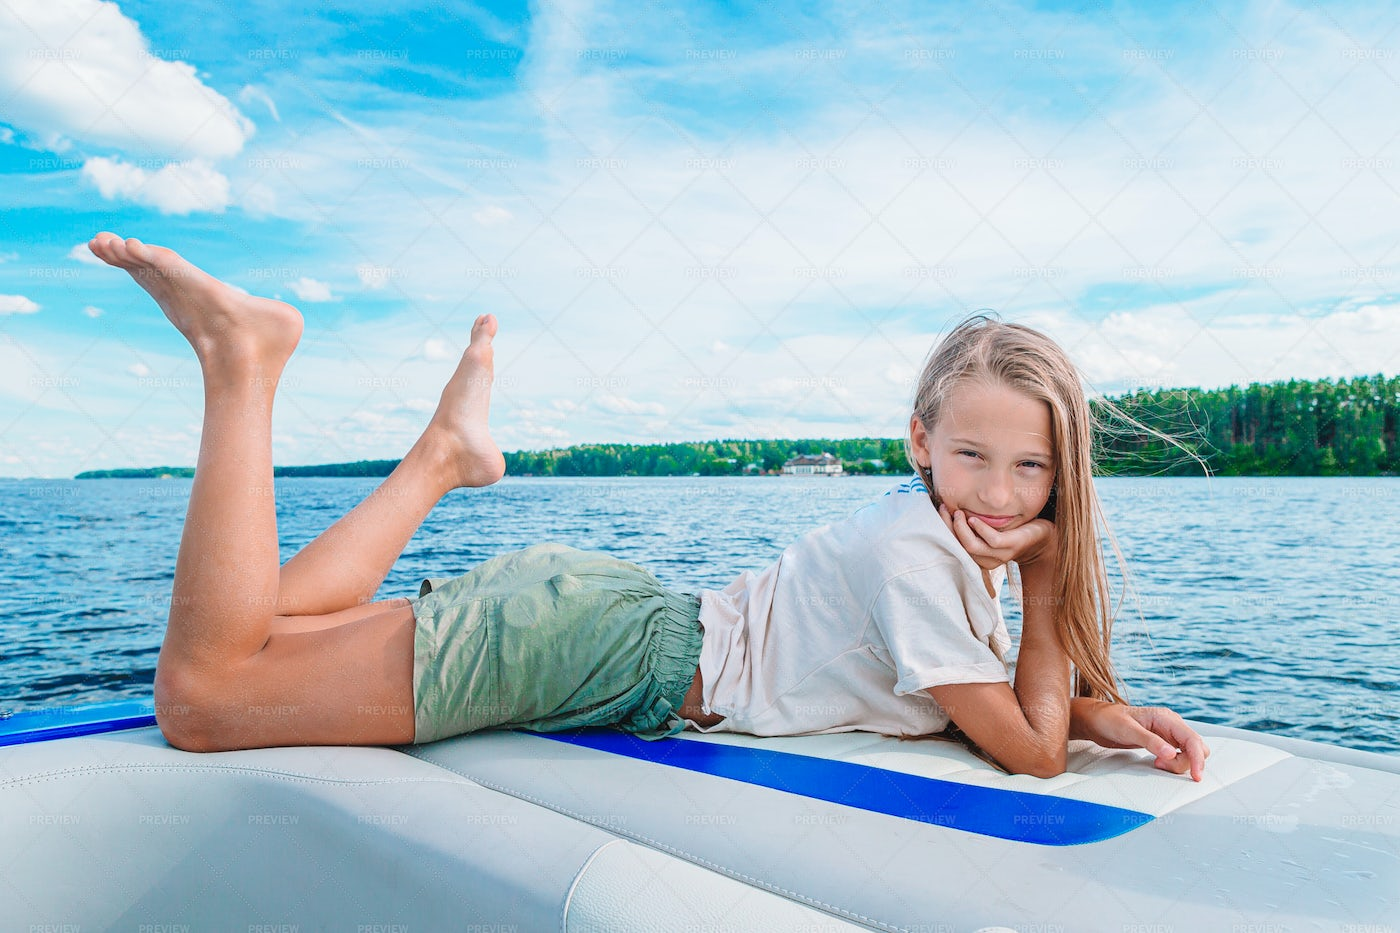 Girl Sailing On A Boat: Stock Photos